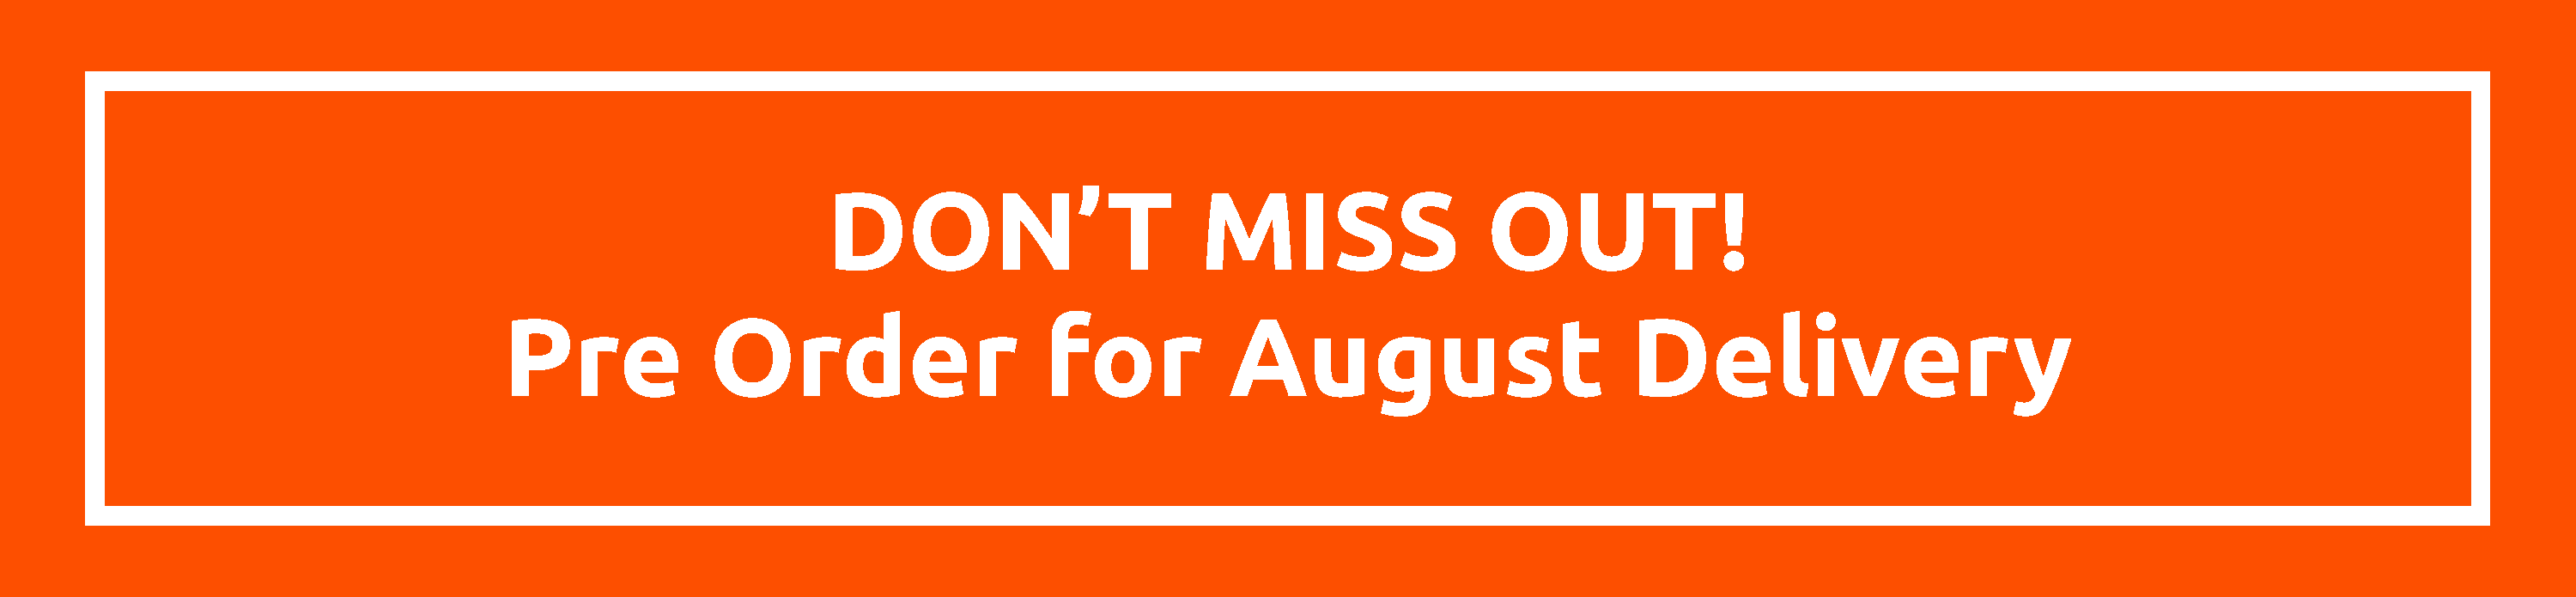 Don't miss out! Pre Order for August Delivery